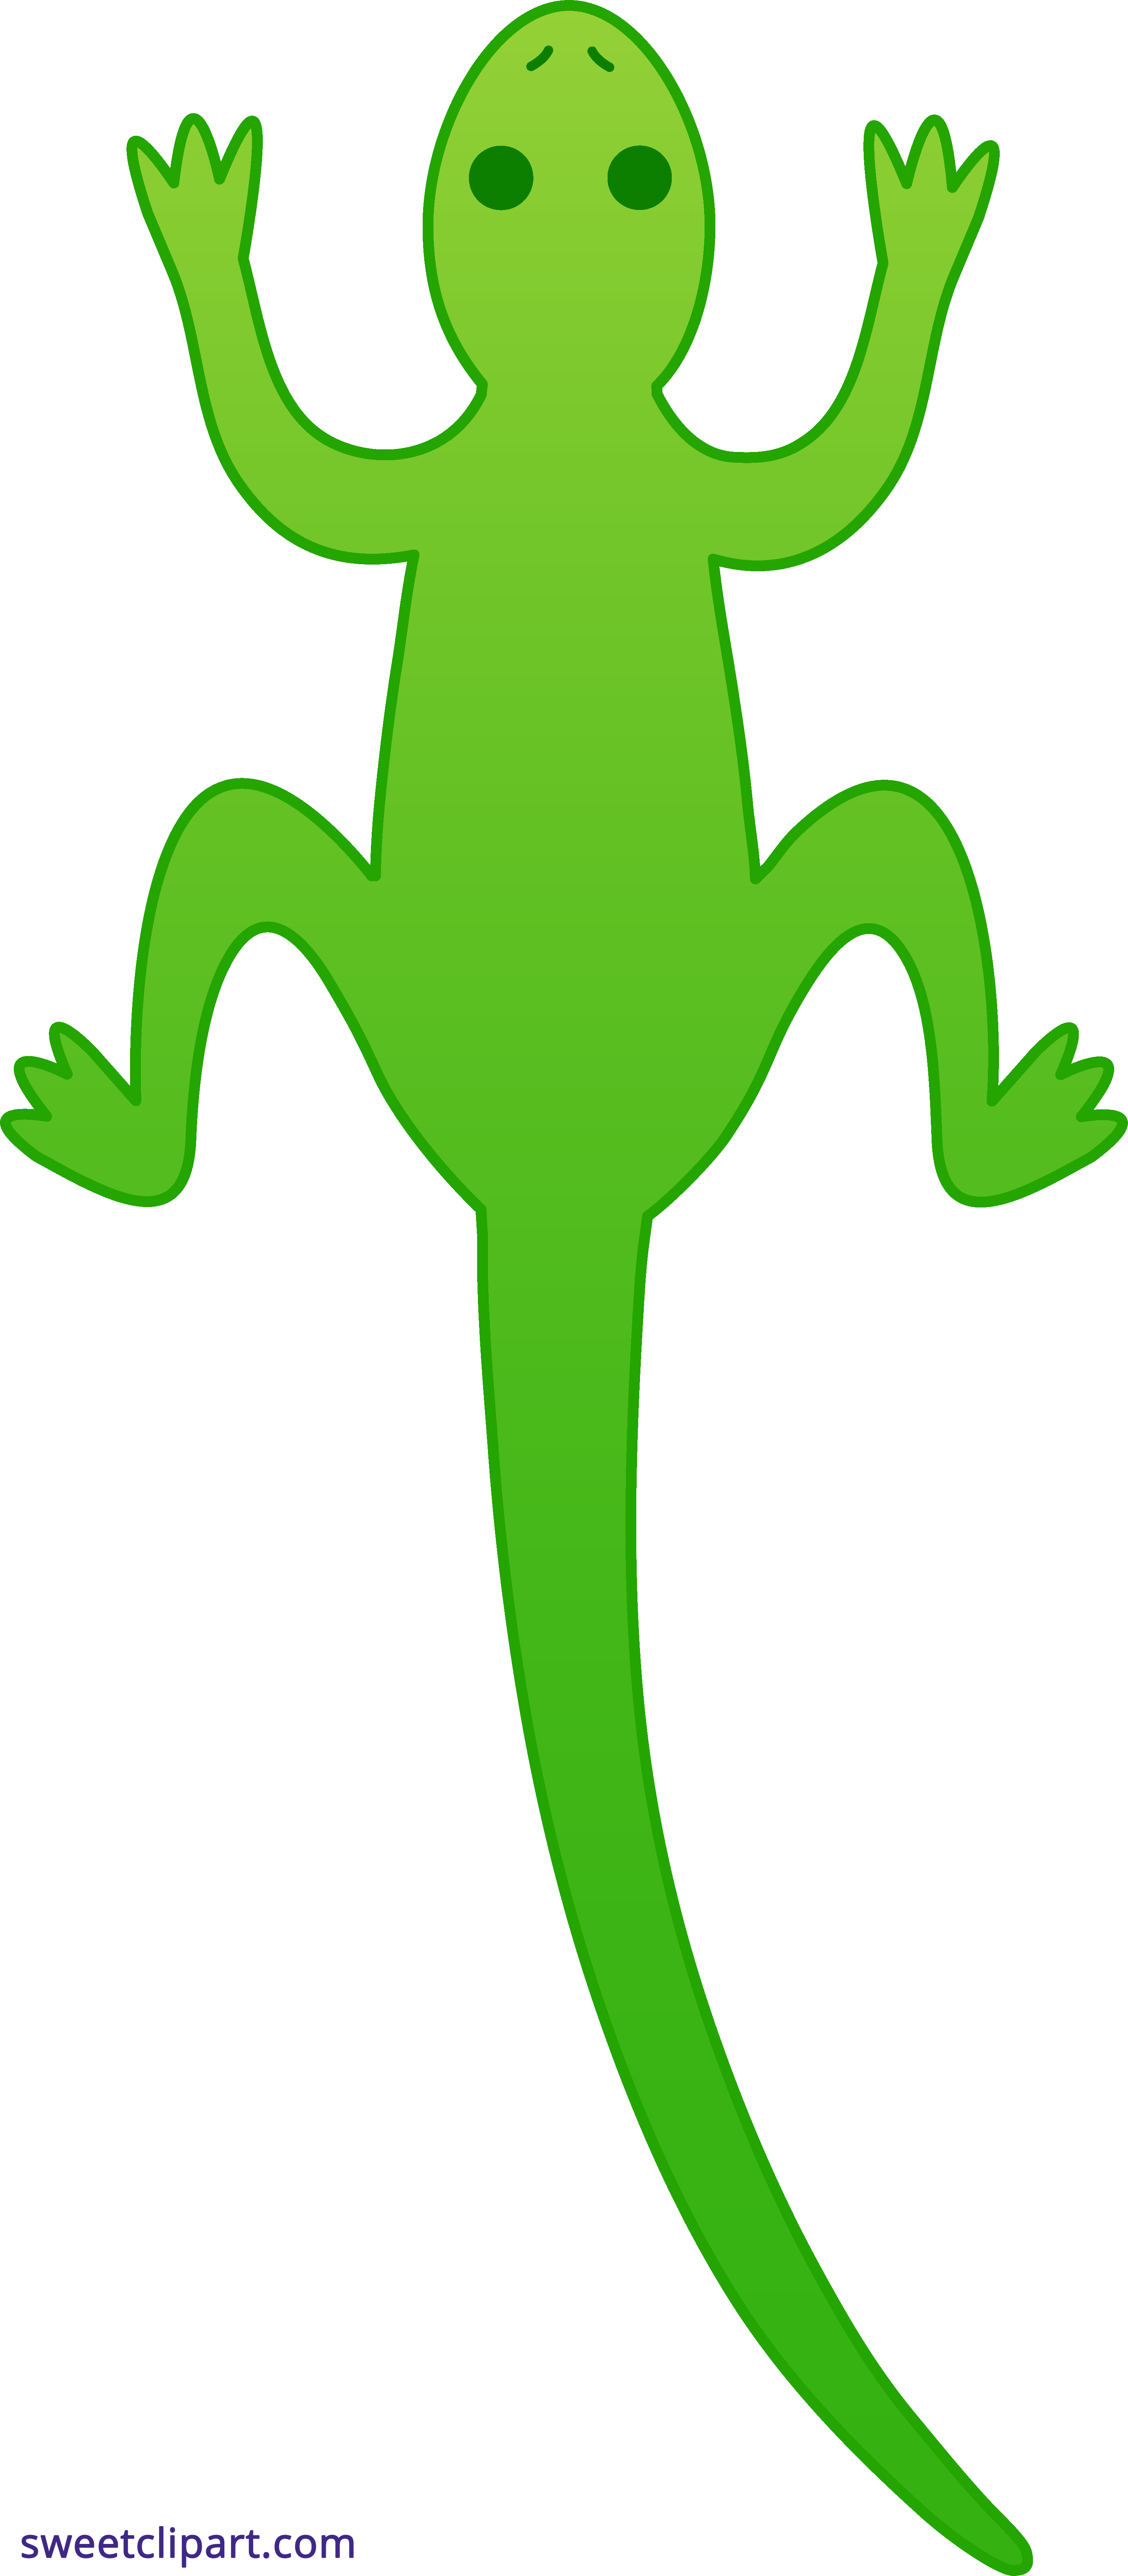 Lizard clipart green lizard. Sweet clip art